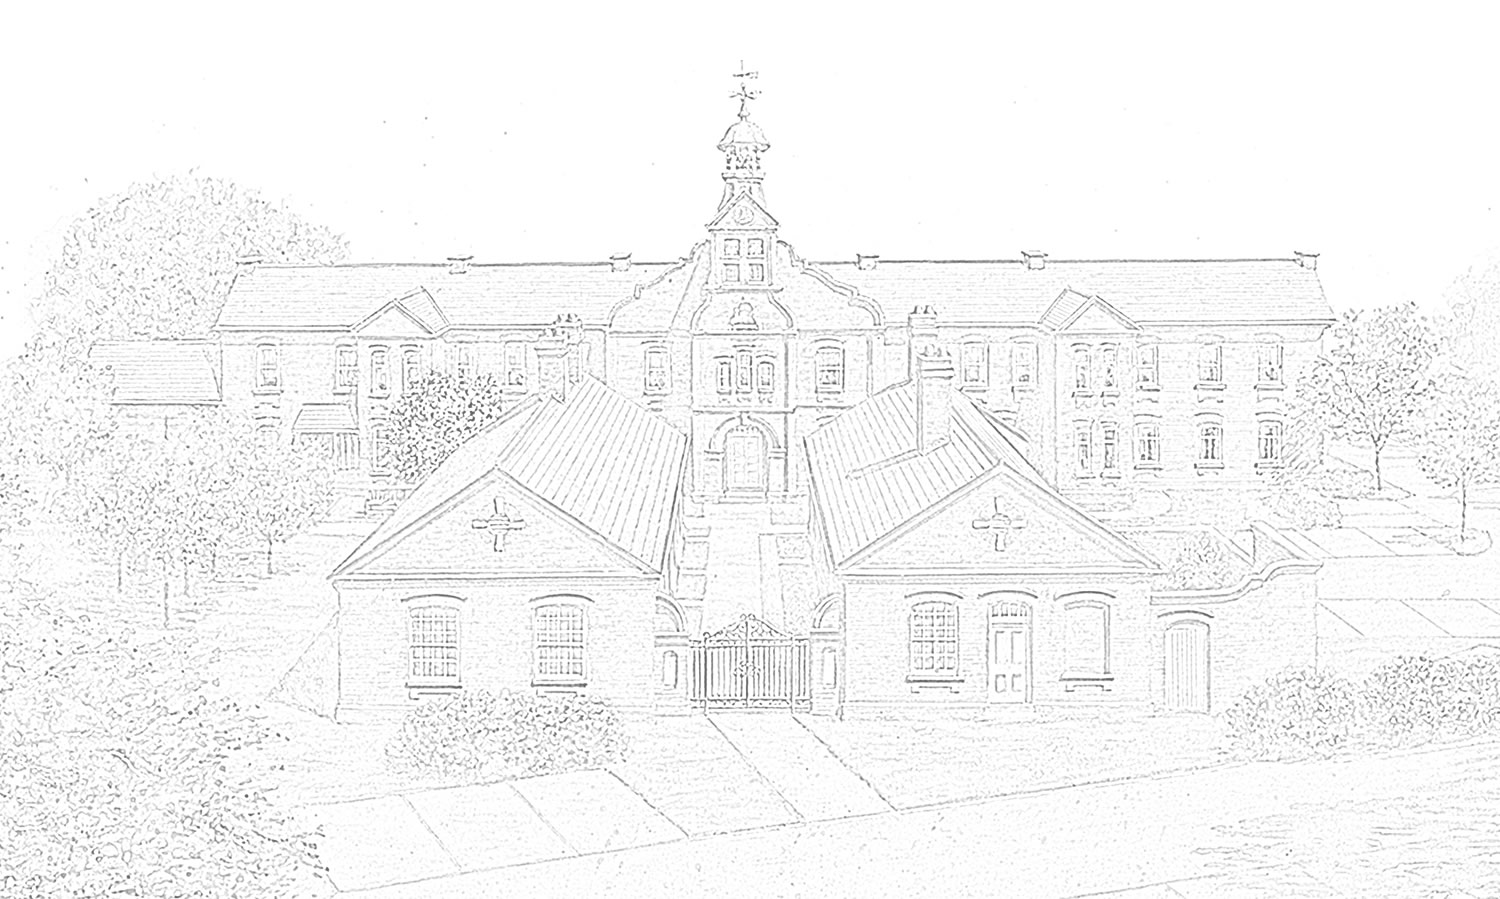 slider-1-architects-fordingbridge-sketch